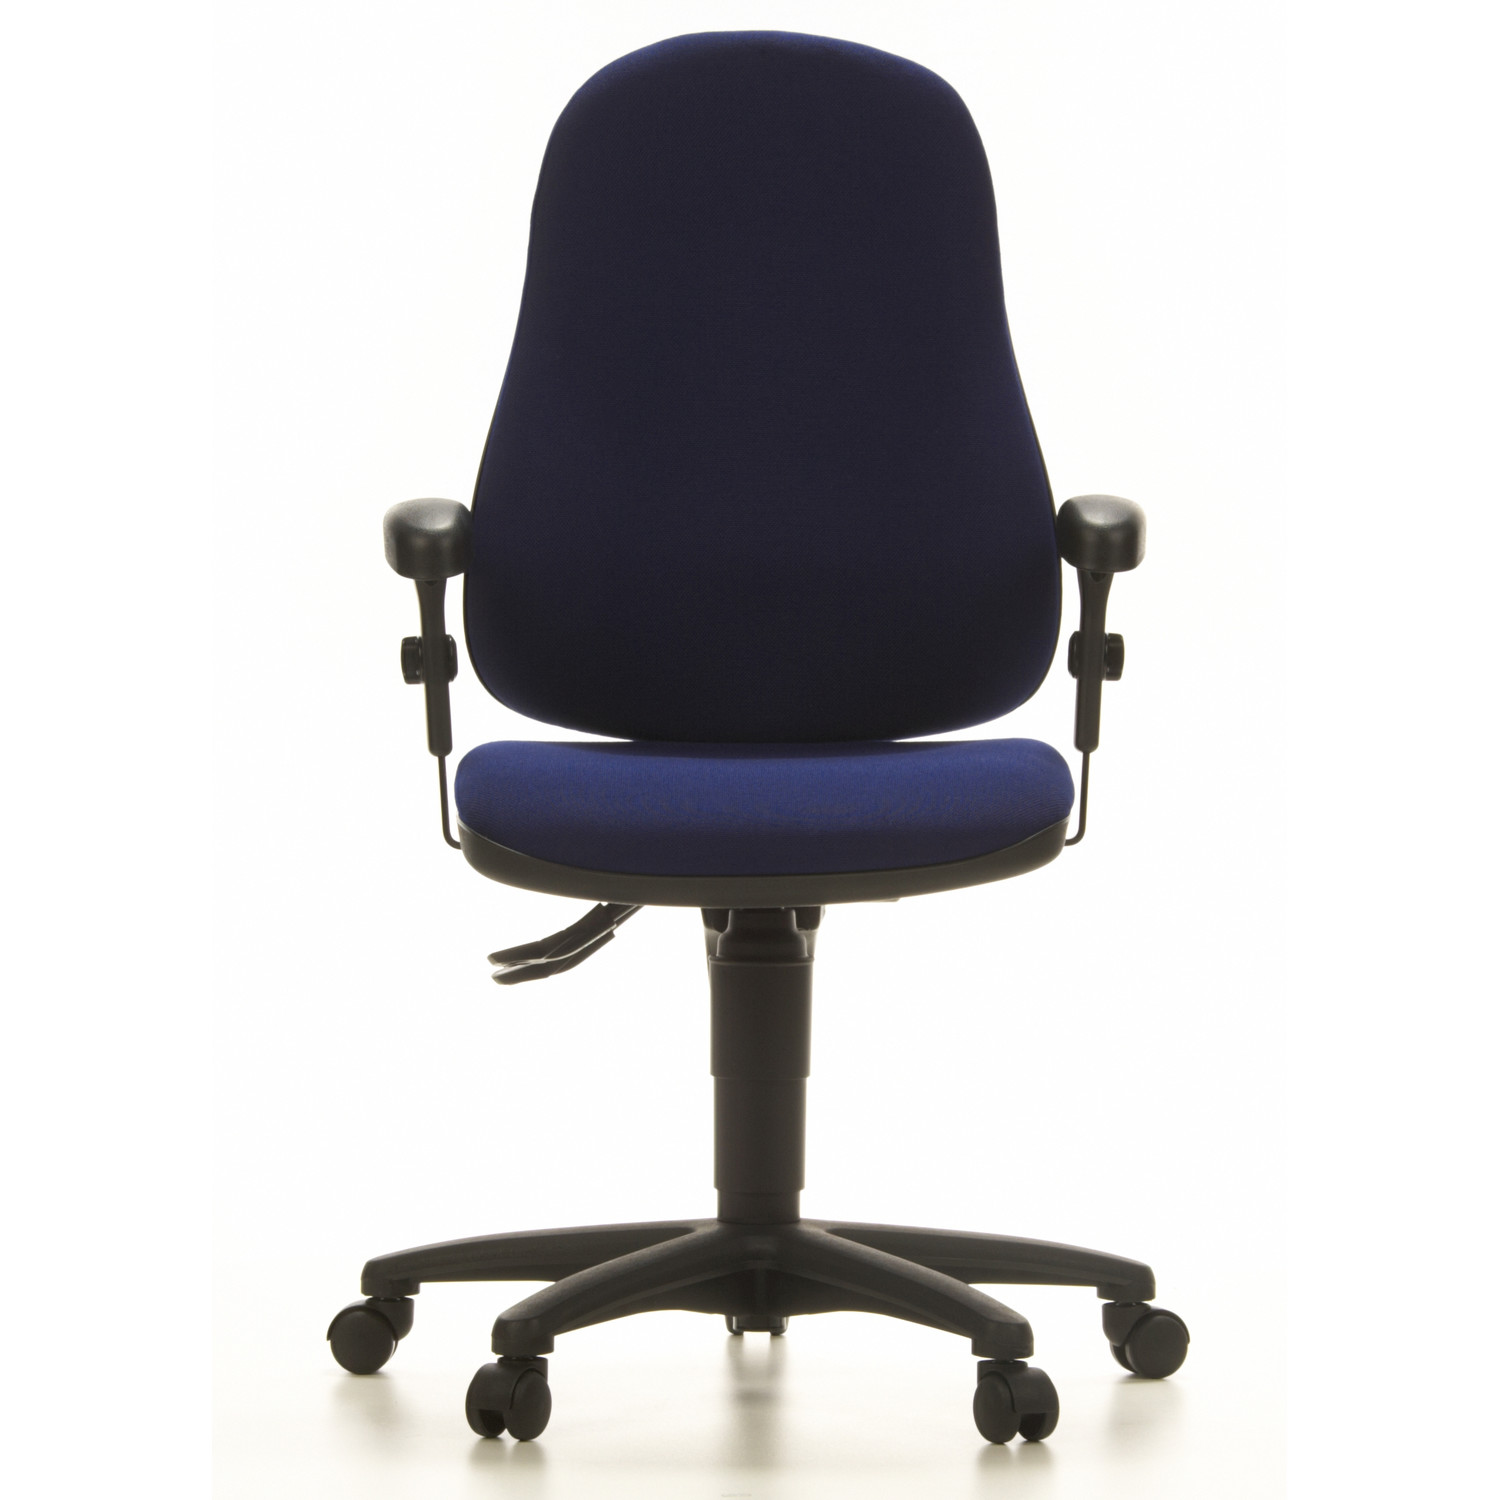 Silla ergon mica california 8h ajustable 100 lga azul for Sillas ergonomicas para oficina